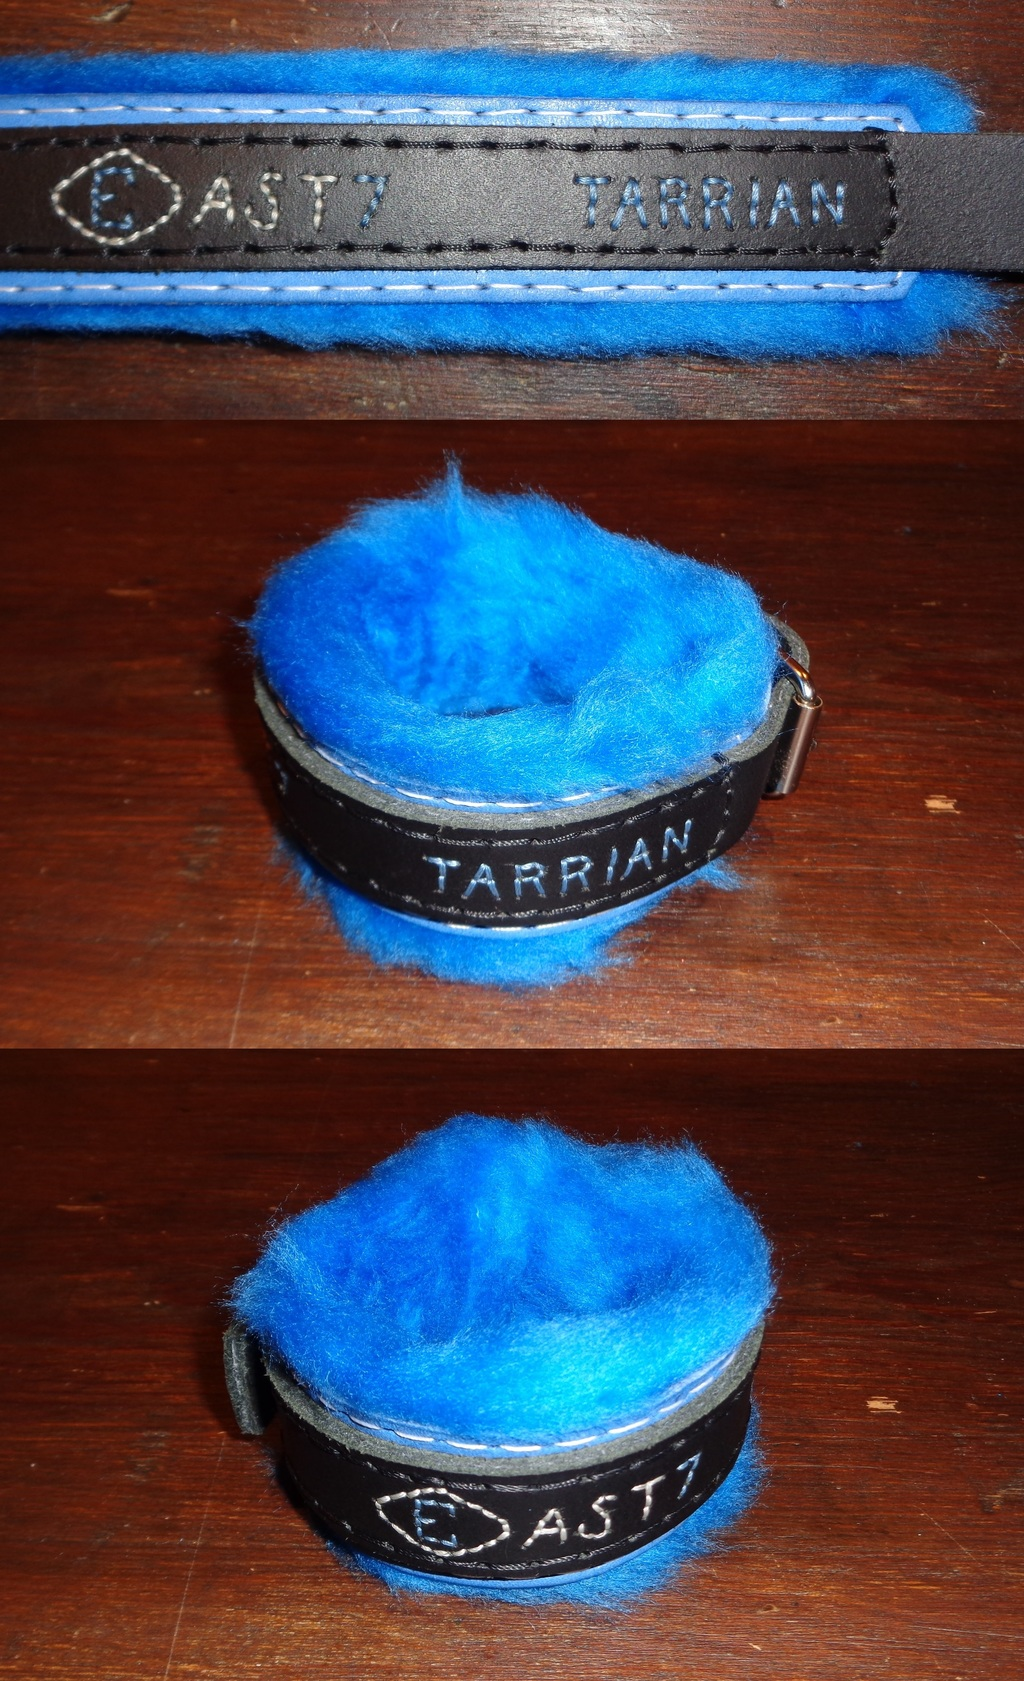 EAST 7 - Leather Bracelet (4/7) for Tarrian